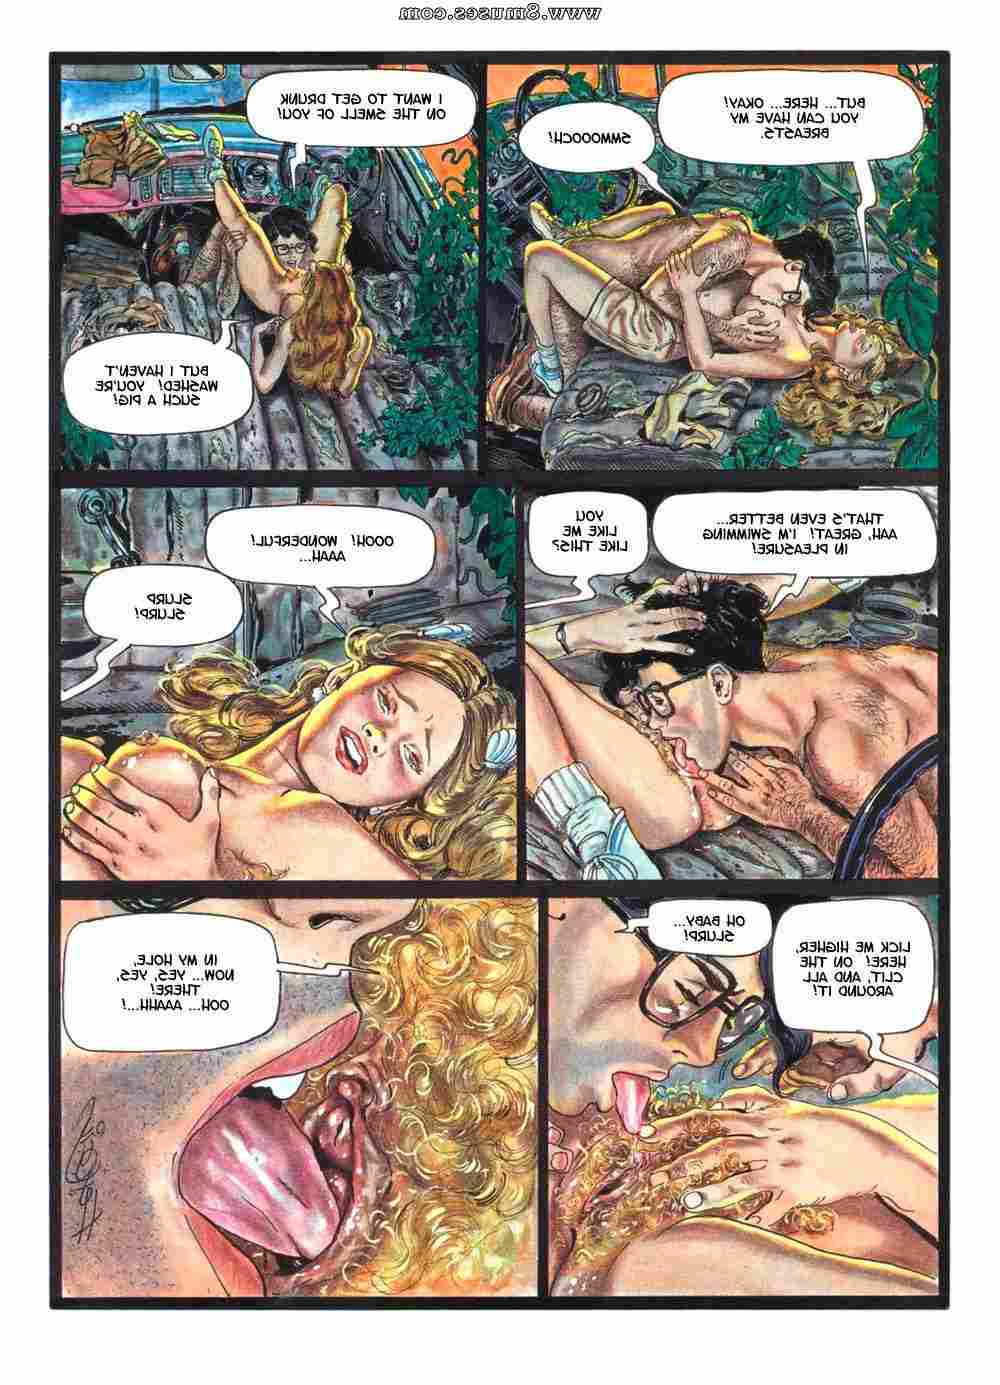 Ferocius-Comics/Forbidden-Flower Forbidden_Flower__8muses_-_Sex_and_Porn_Comics_10.jpg